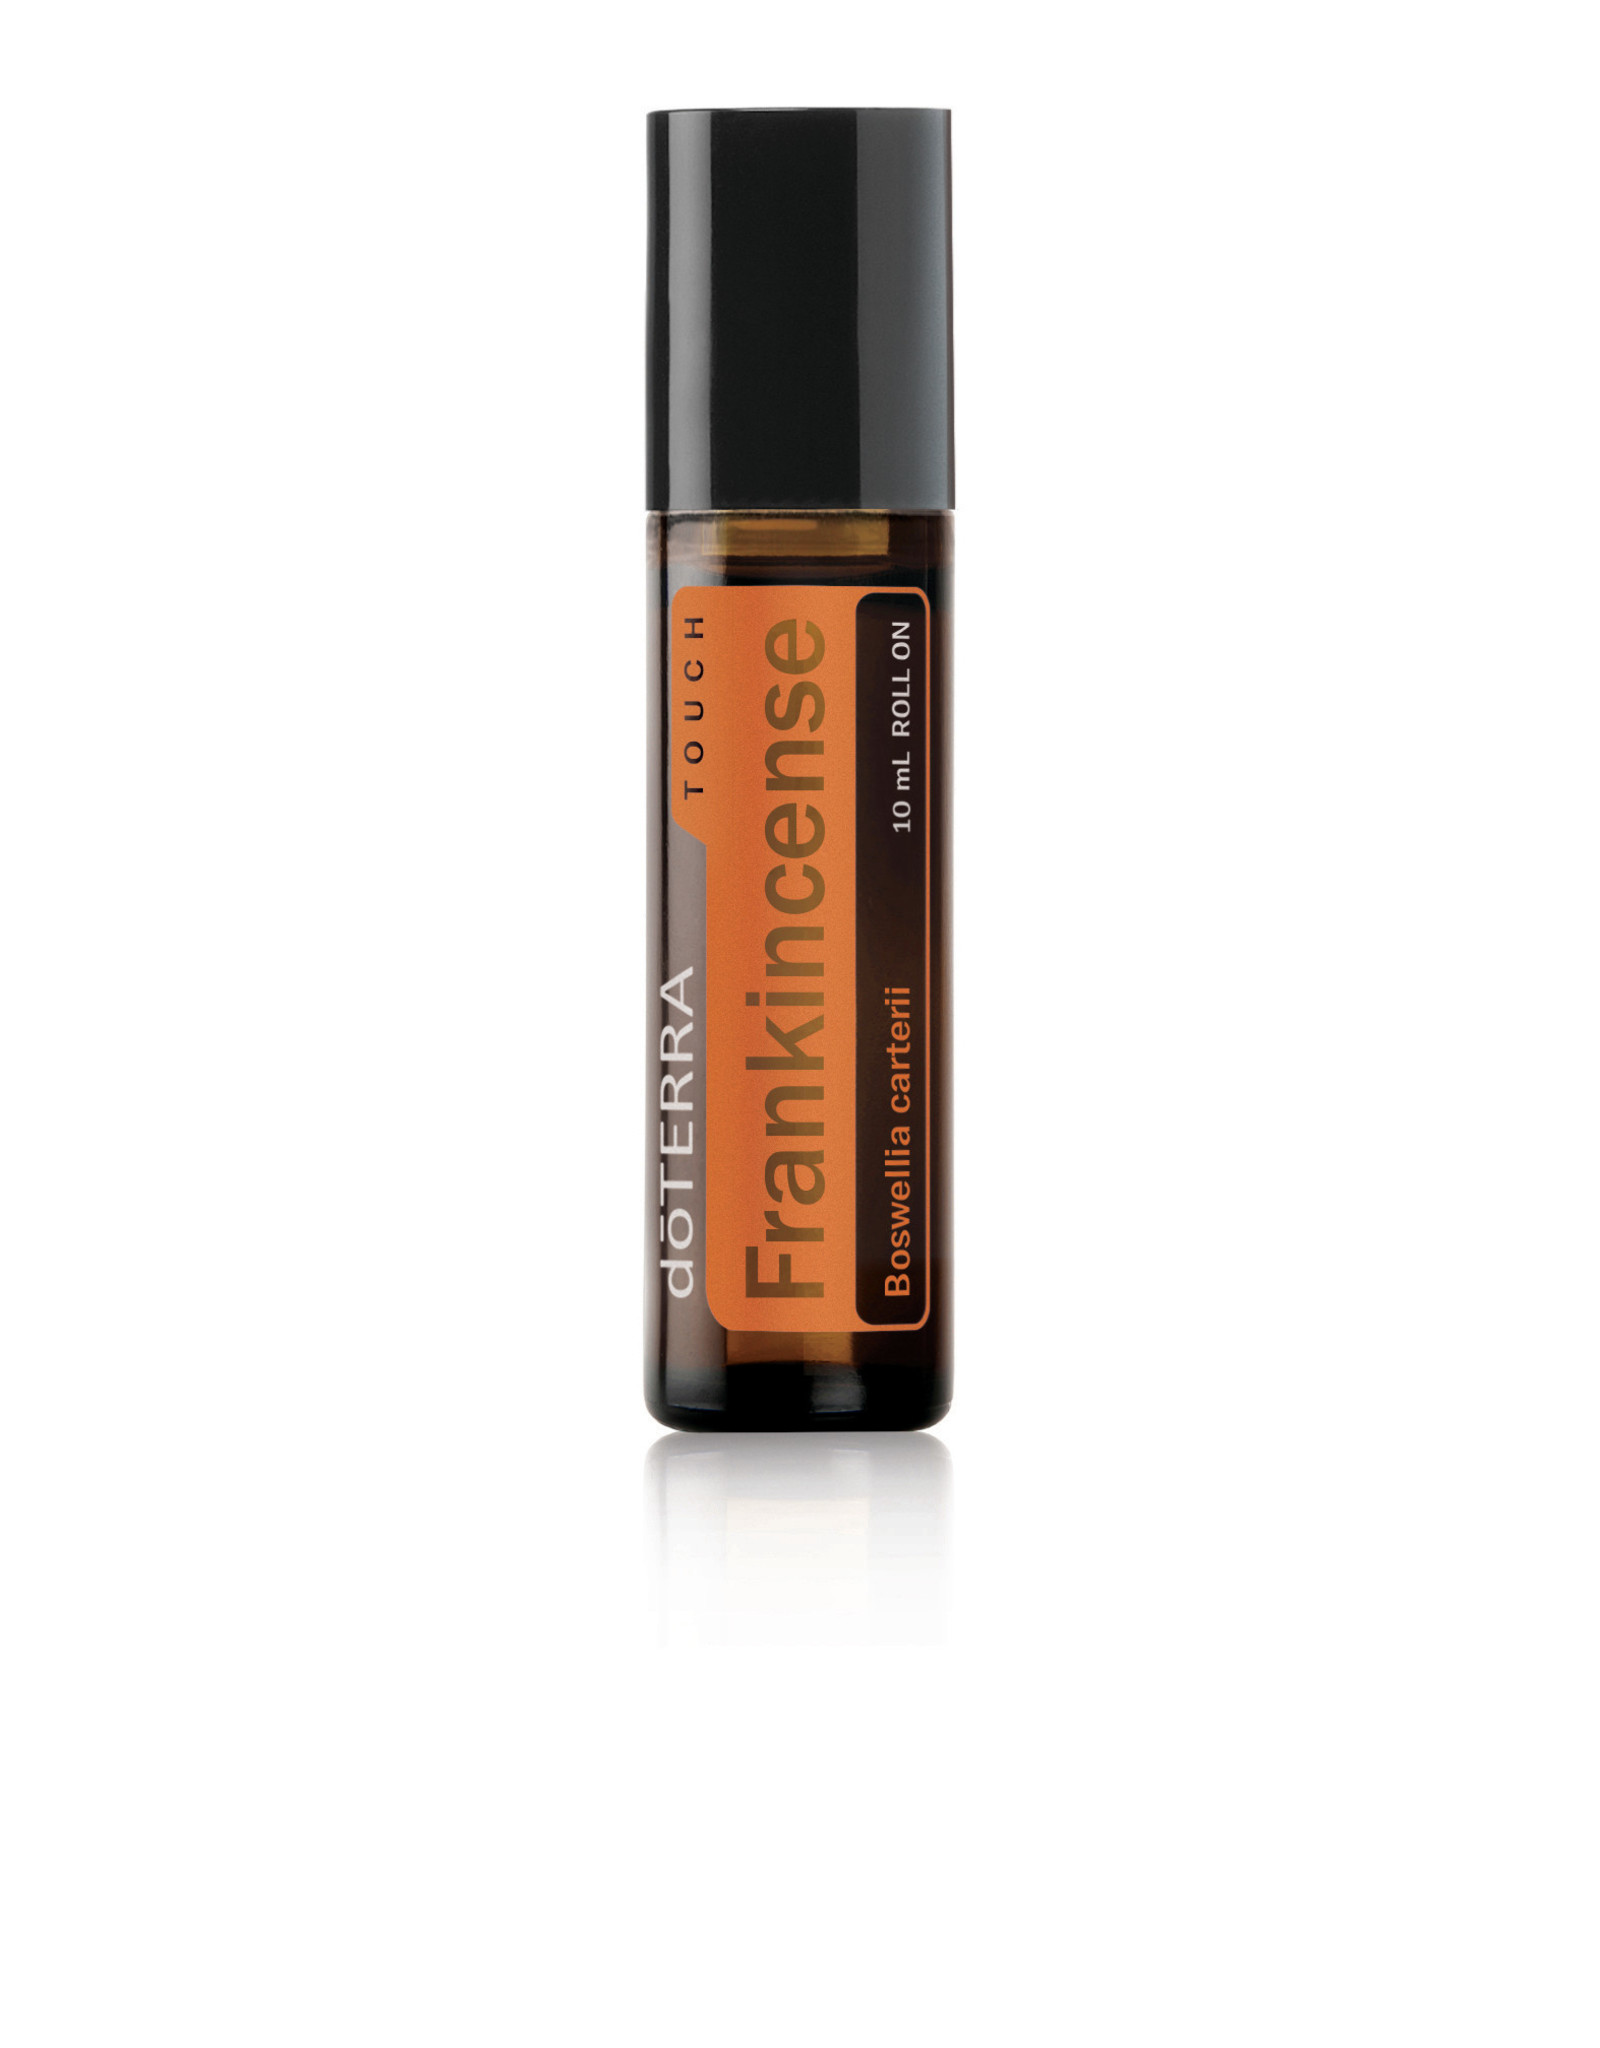 doTERRA doTERRA Frankincense Touch (10mL)